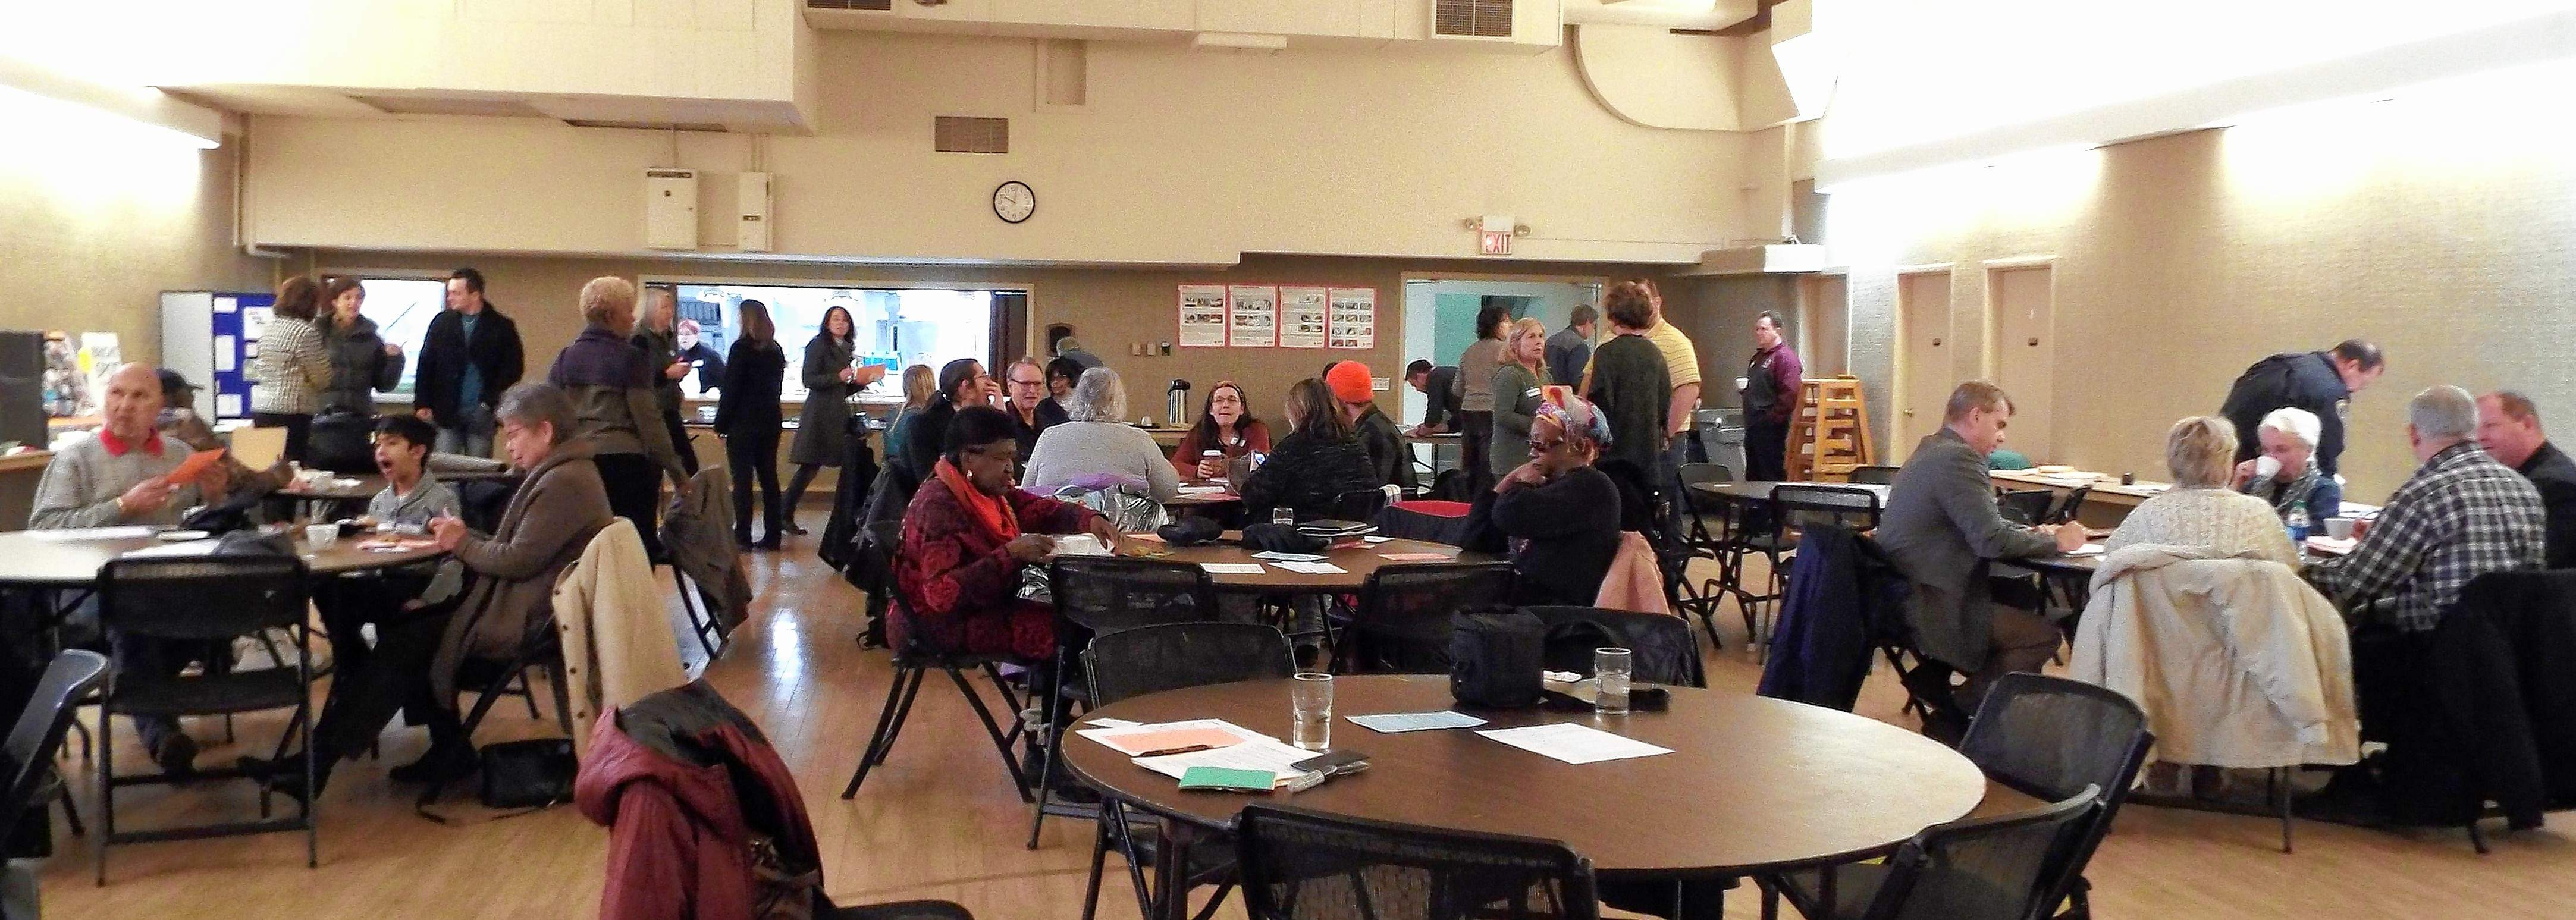 Dozens of Carbondale residents braved the frigid temperatures and icy conditions to come to the annual meeting of the Neighborhood Alliance Saturday at First United Methodist Church.